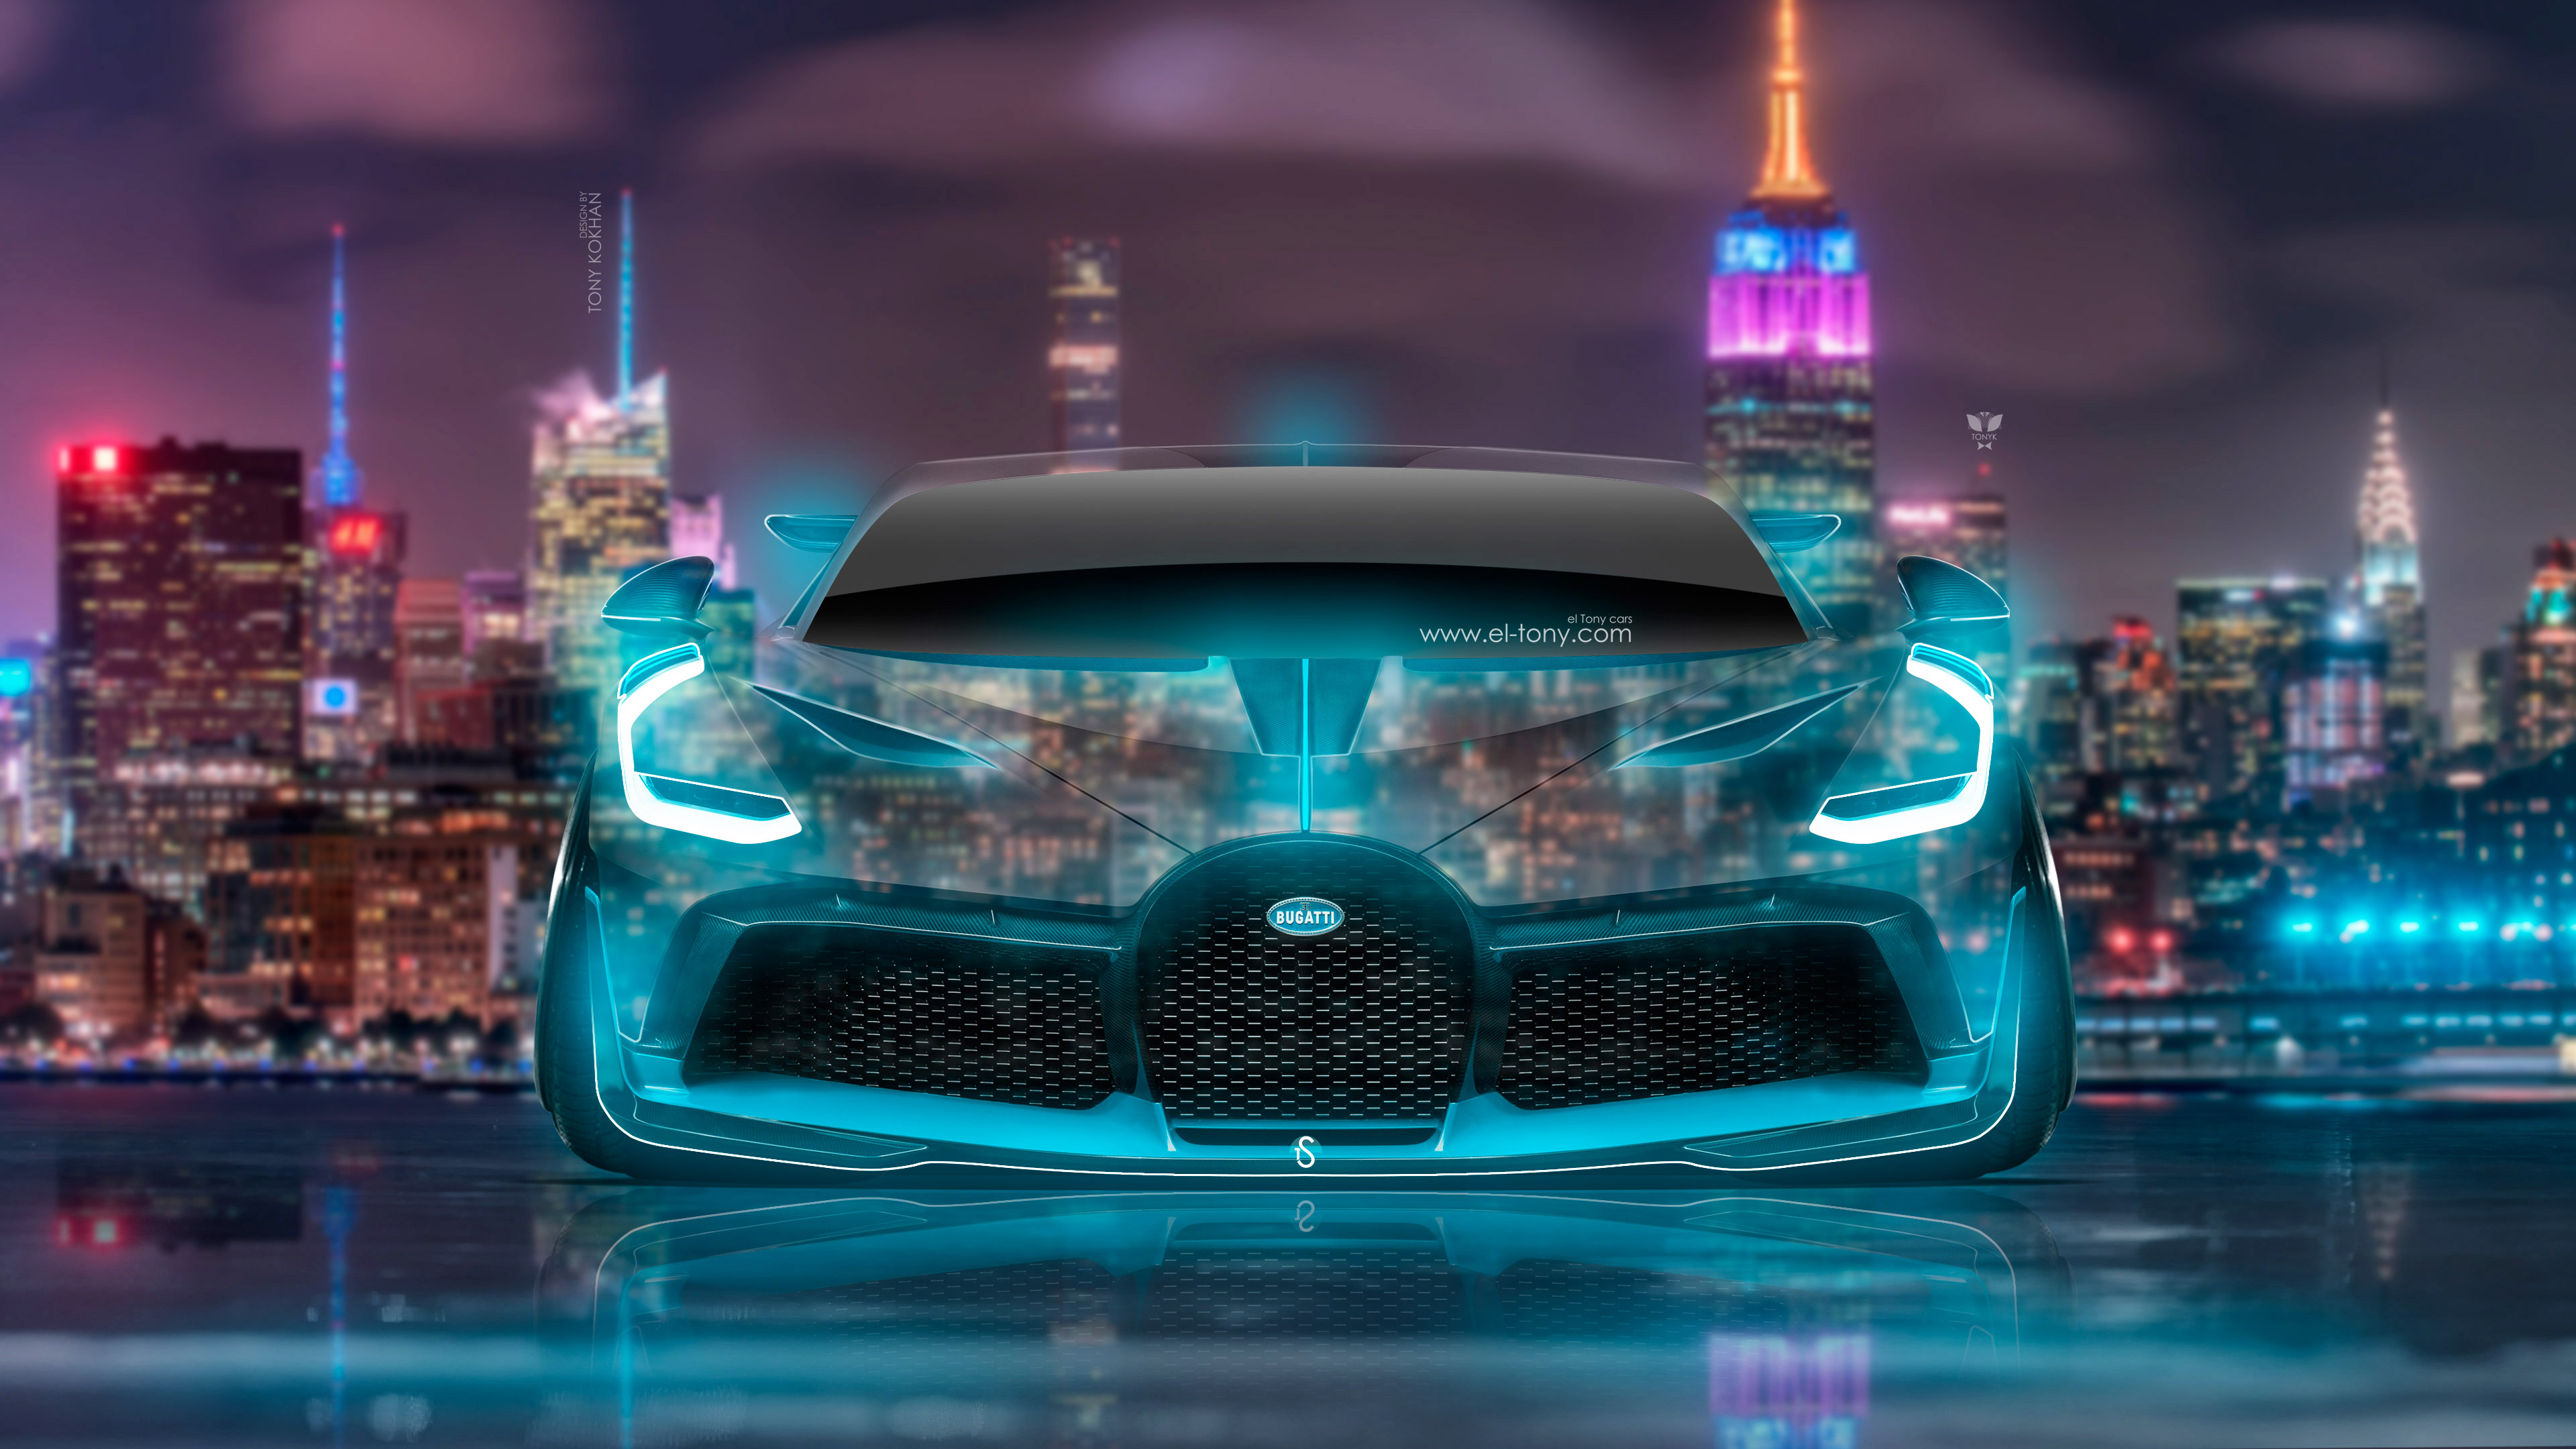 Bugatti-Divo-Front-Super-Neon-Crystal-New-York-Night-City-Art-Car-2018-Multicolors-4K-Wallpapers-design-by-Tony-Kokhan-www.el-tony.com-image